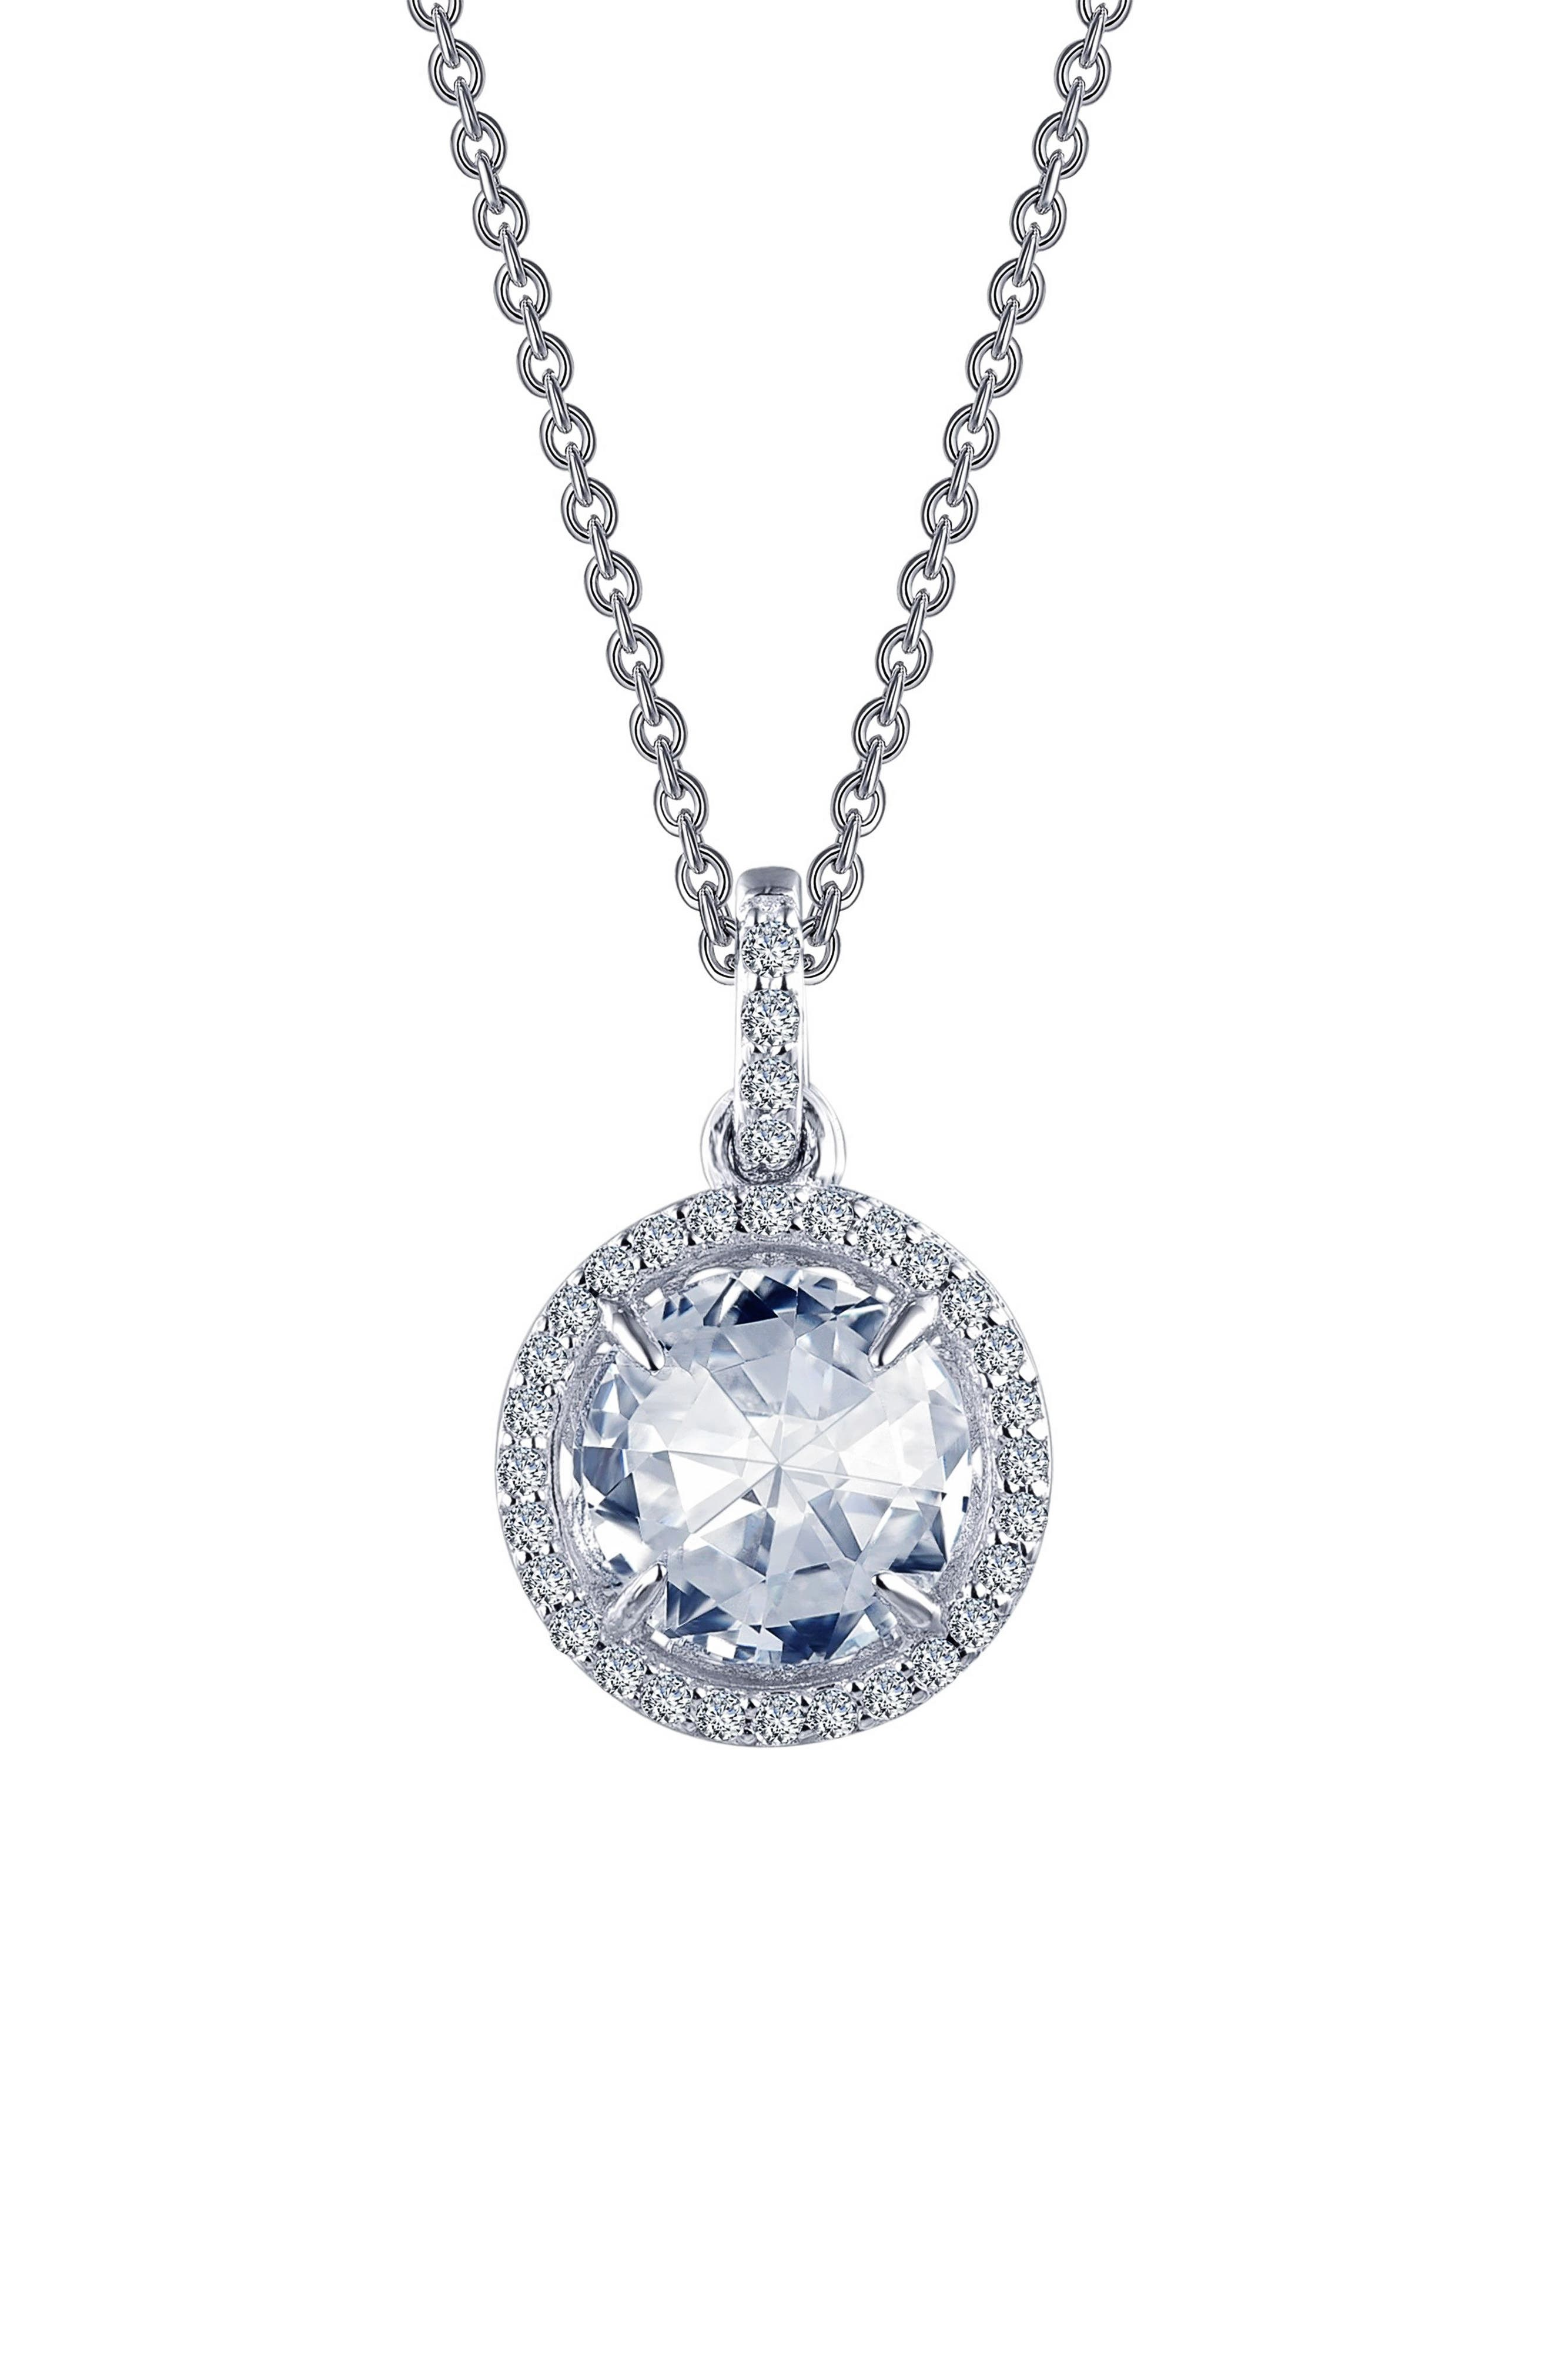 Rose Cut Simulated Diamond Pendant Necklace,                             Main thumbnail 1, color,                             SILVER